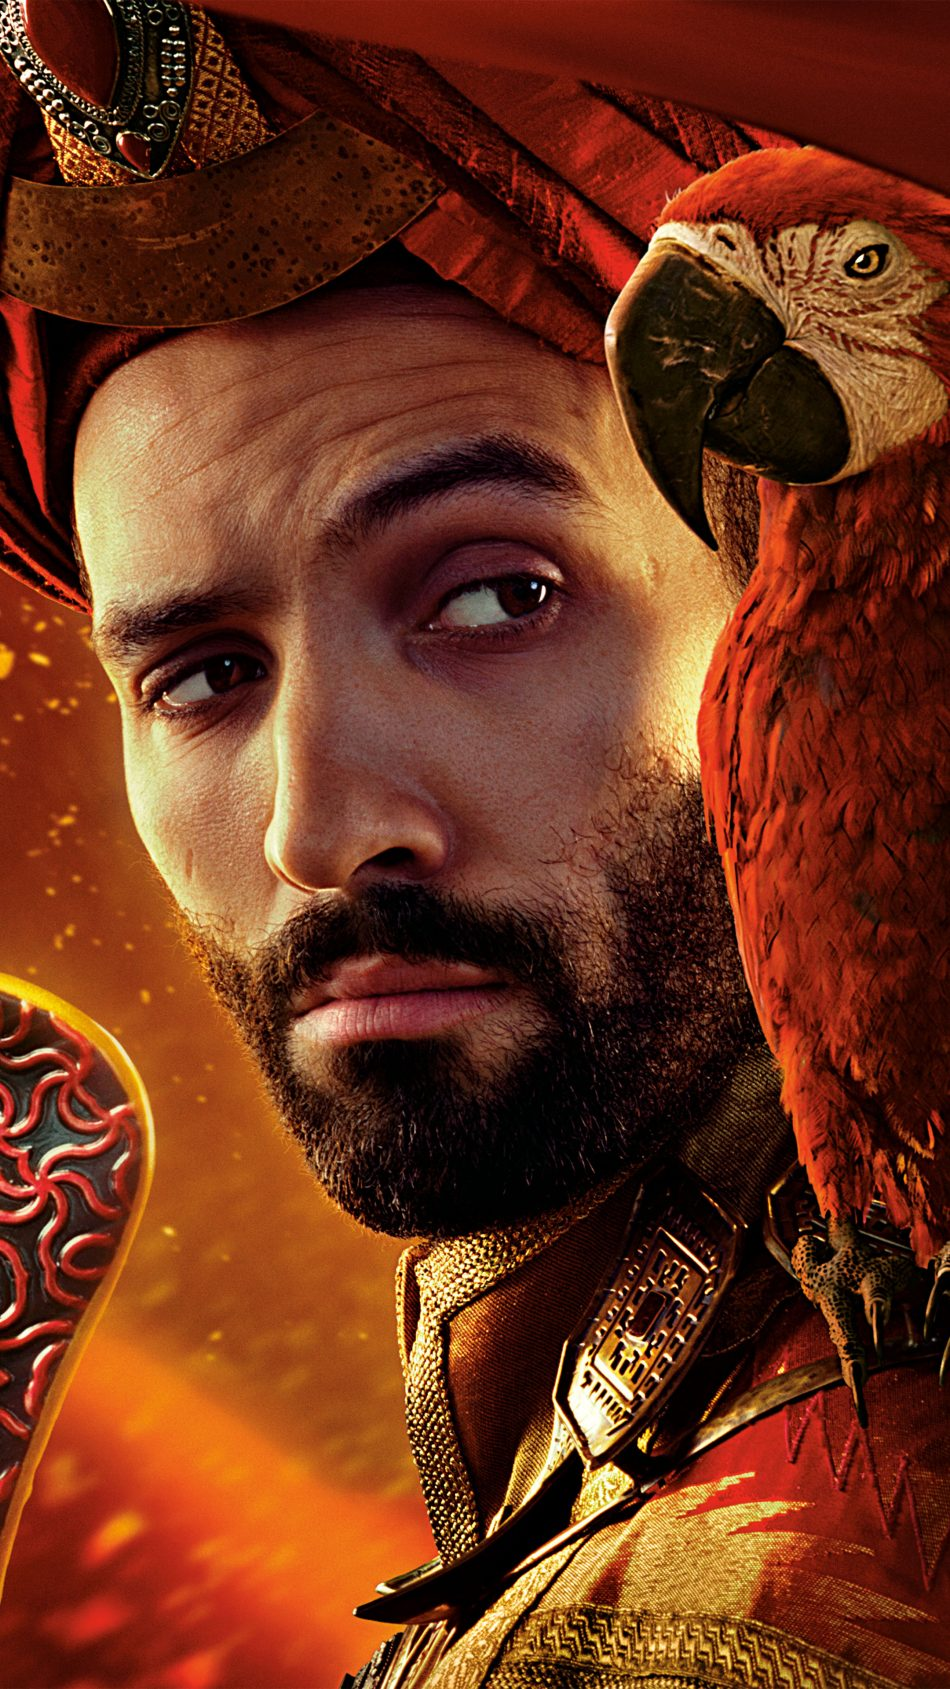 Marwan Kenzari As Jafar In Aladdin 2019 4K Ultra HD Mobile Wallpaper